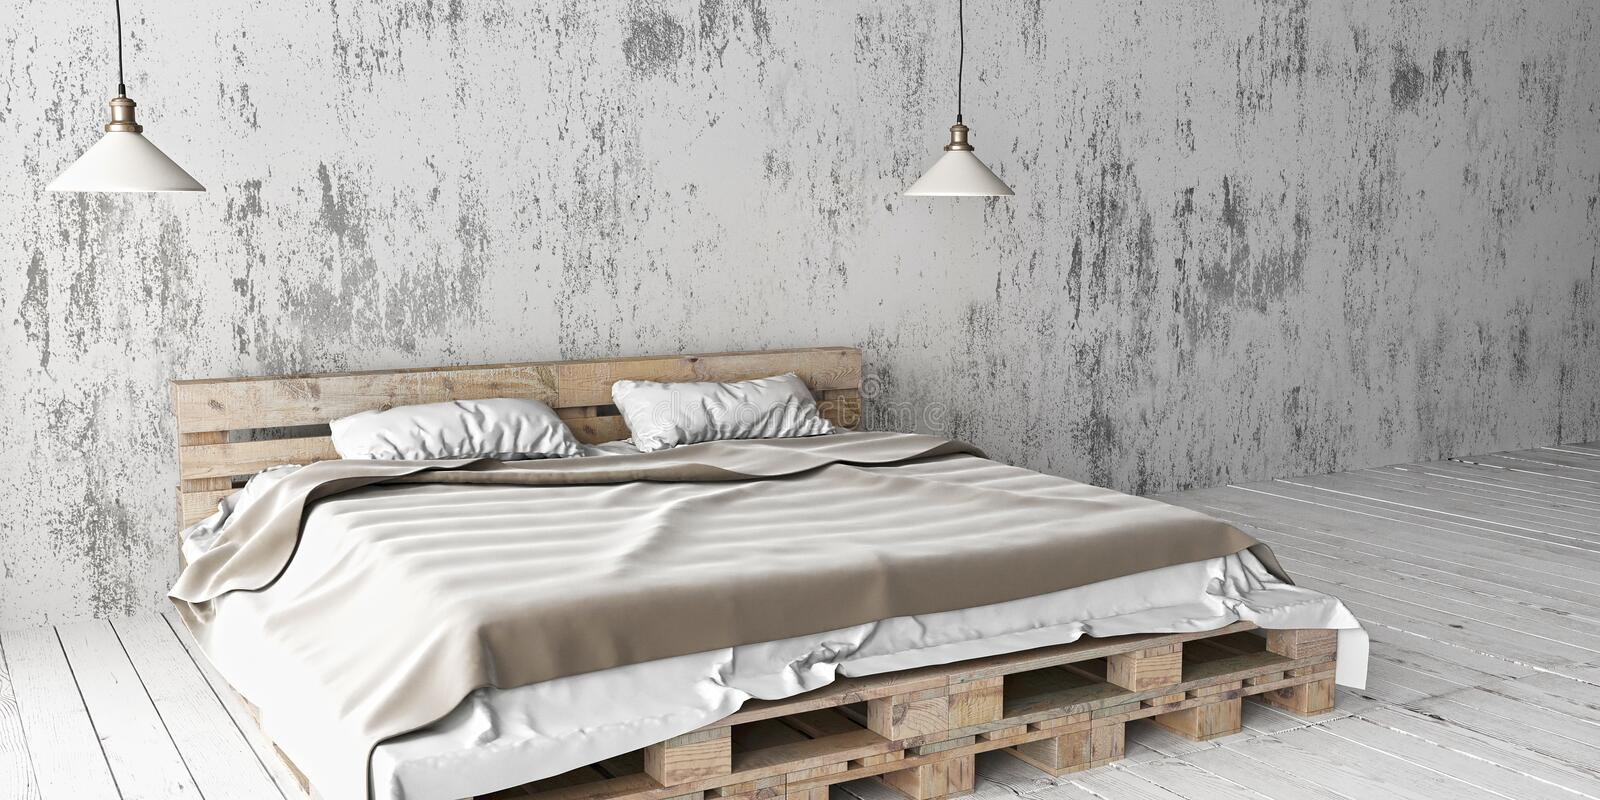 Download A Industrial Style Bedroom With Recycled Pallet Bed. 3D Render.  Stock Illustration